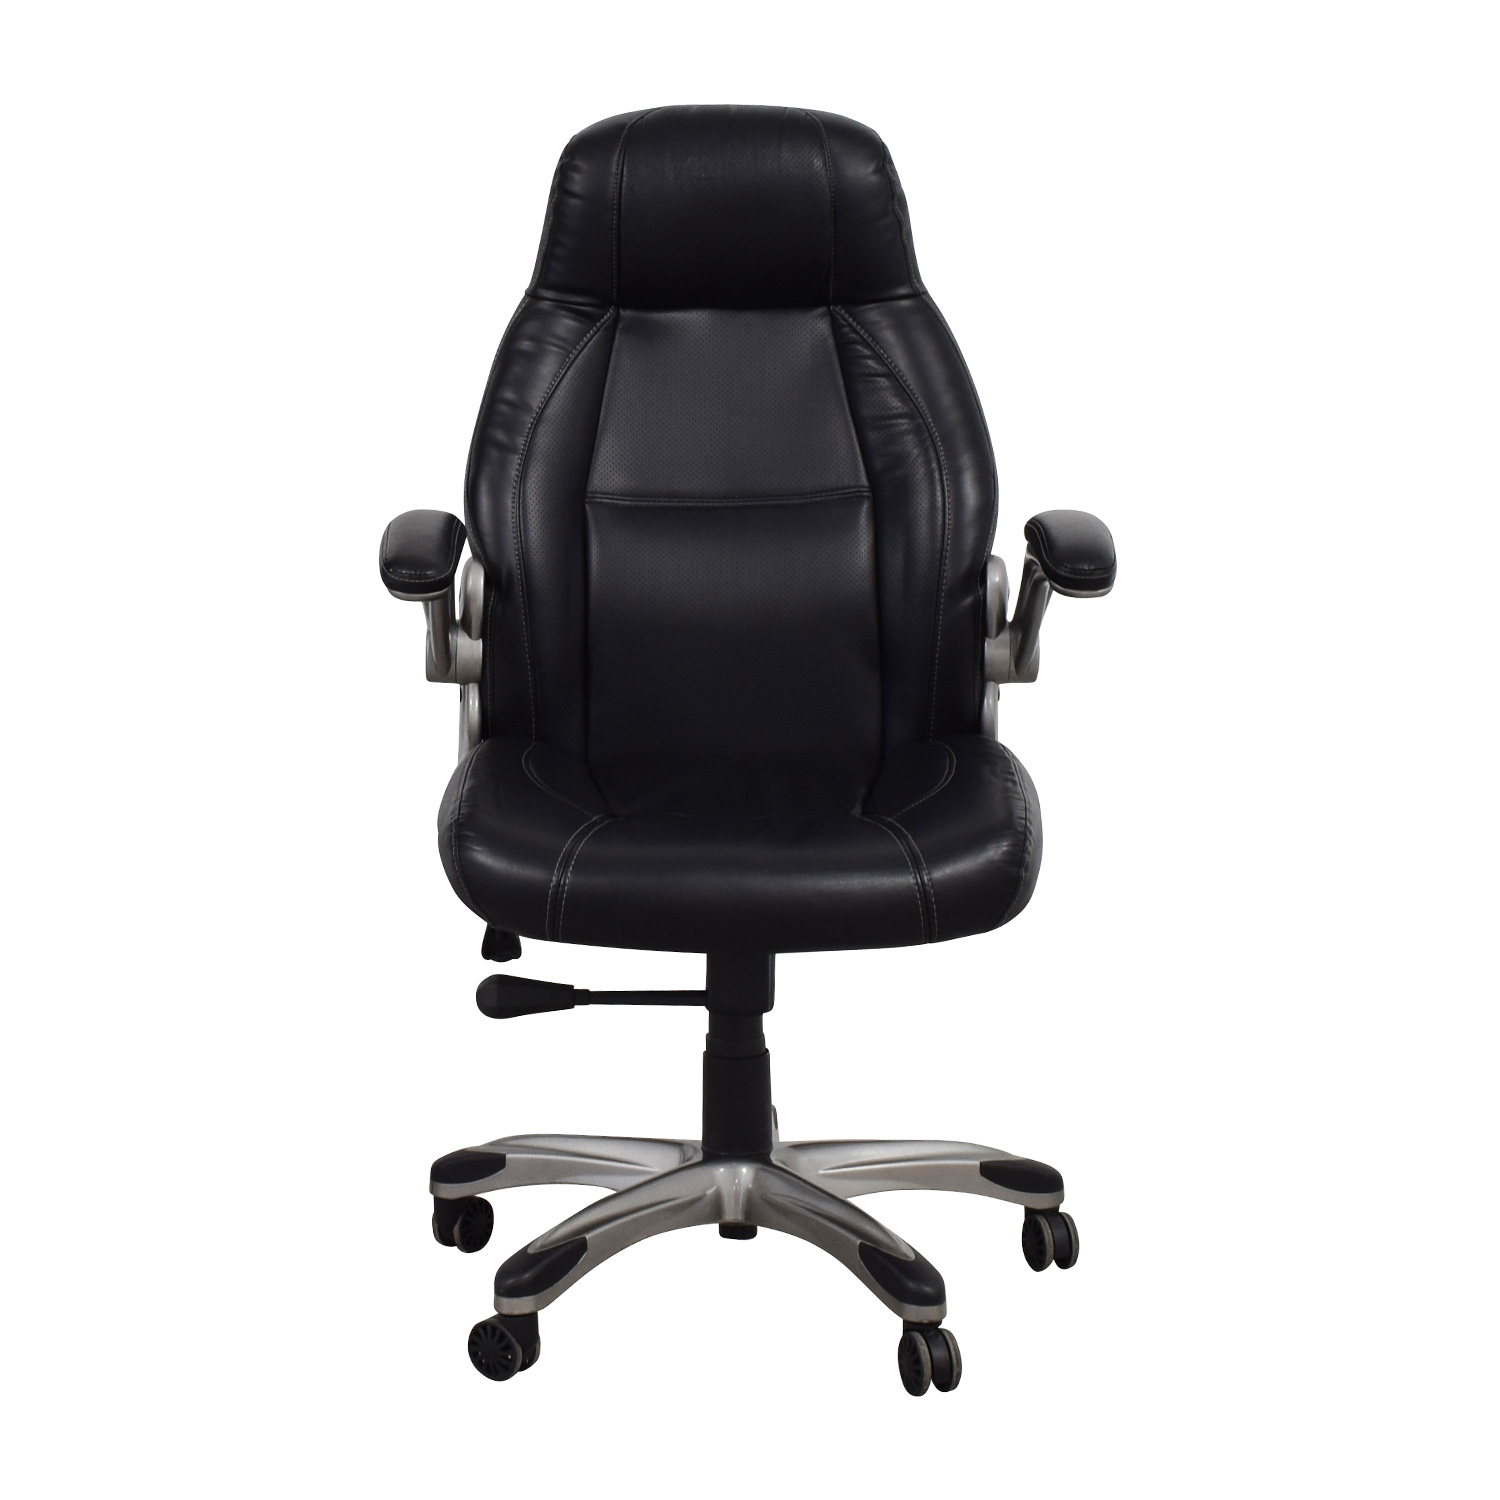 Best Office Chair: Staples Office Chair